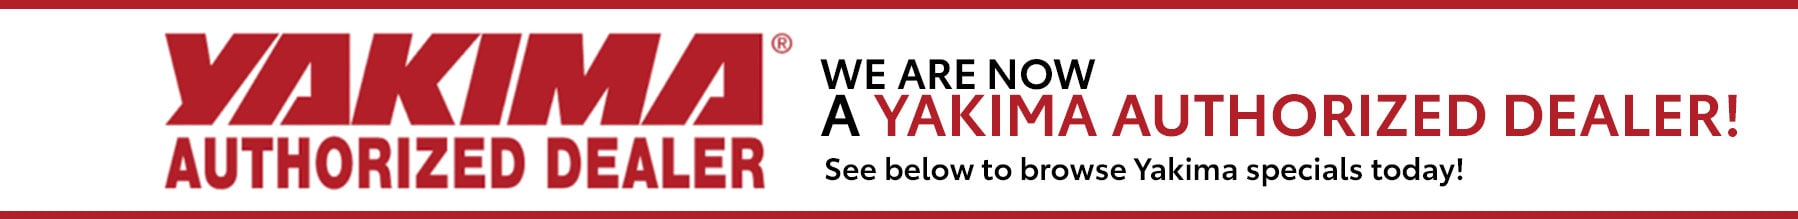 We are now a Yakima Authorized Dealer!